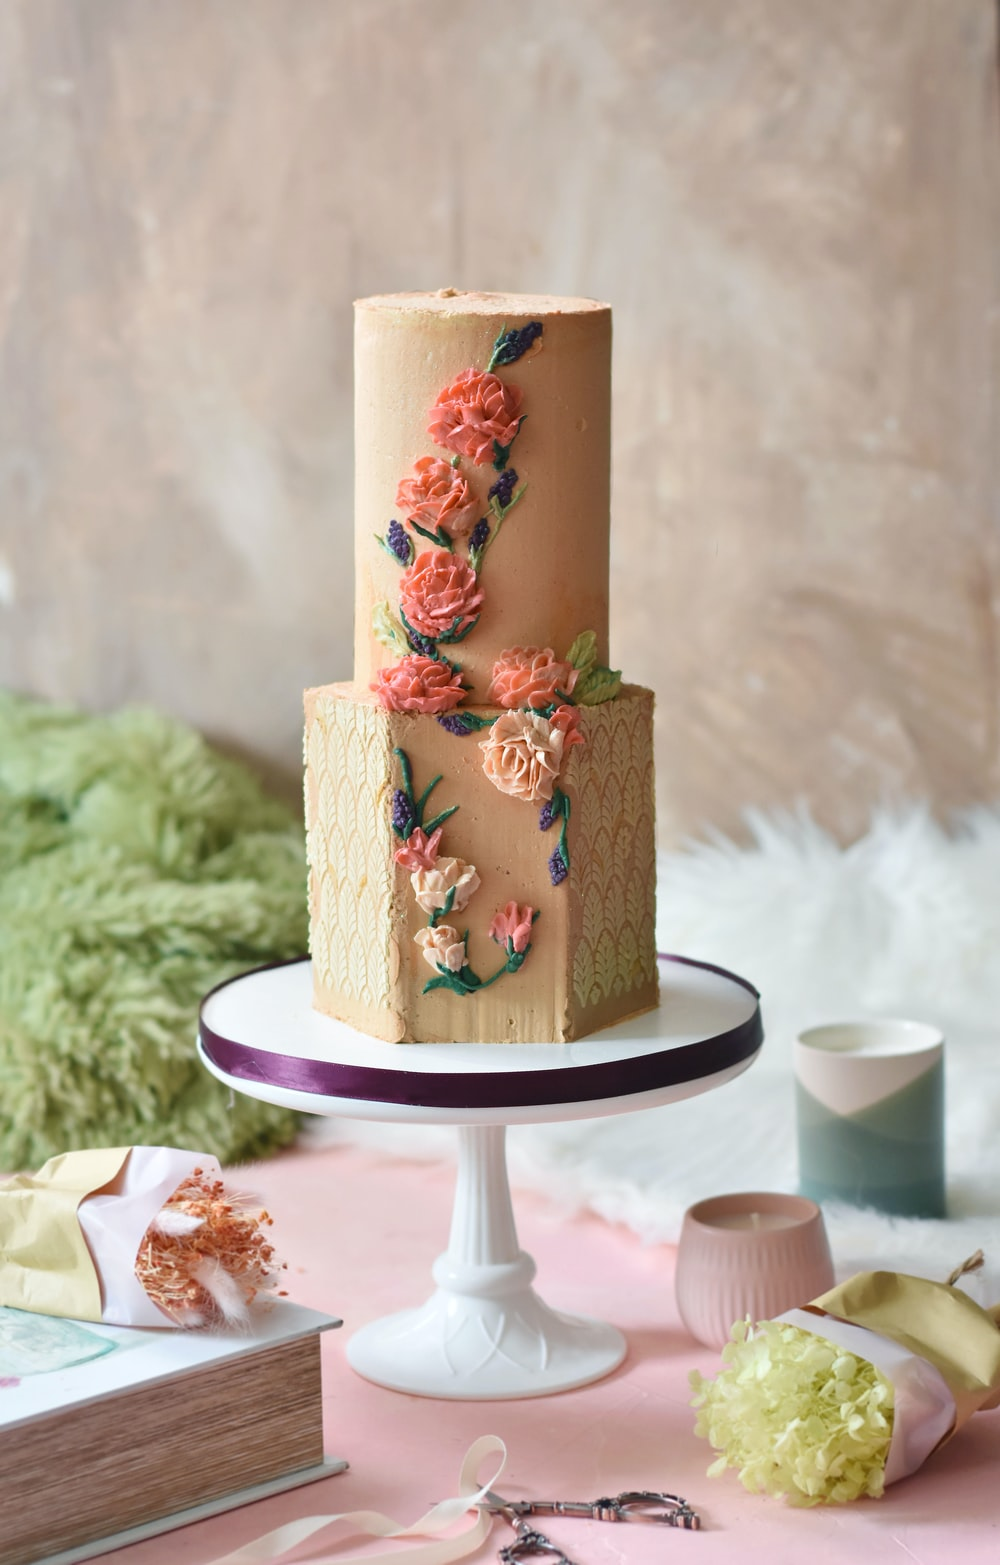 brown and red floral cake on white ceramic plate